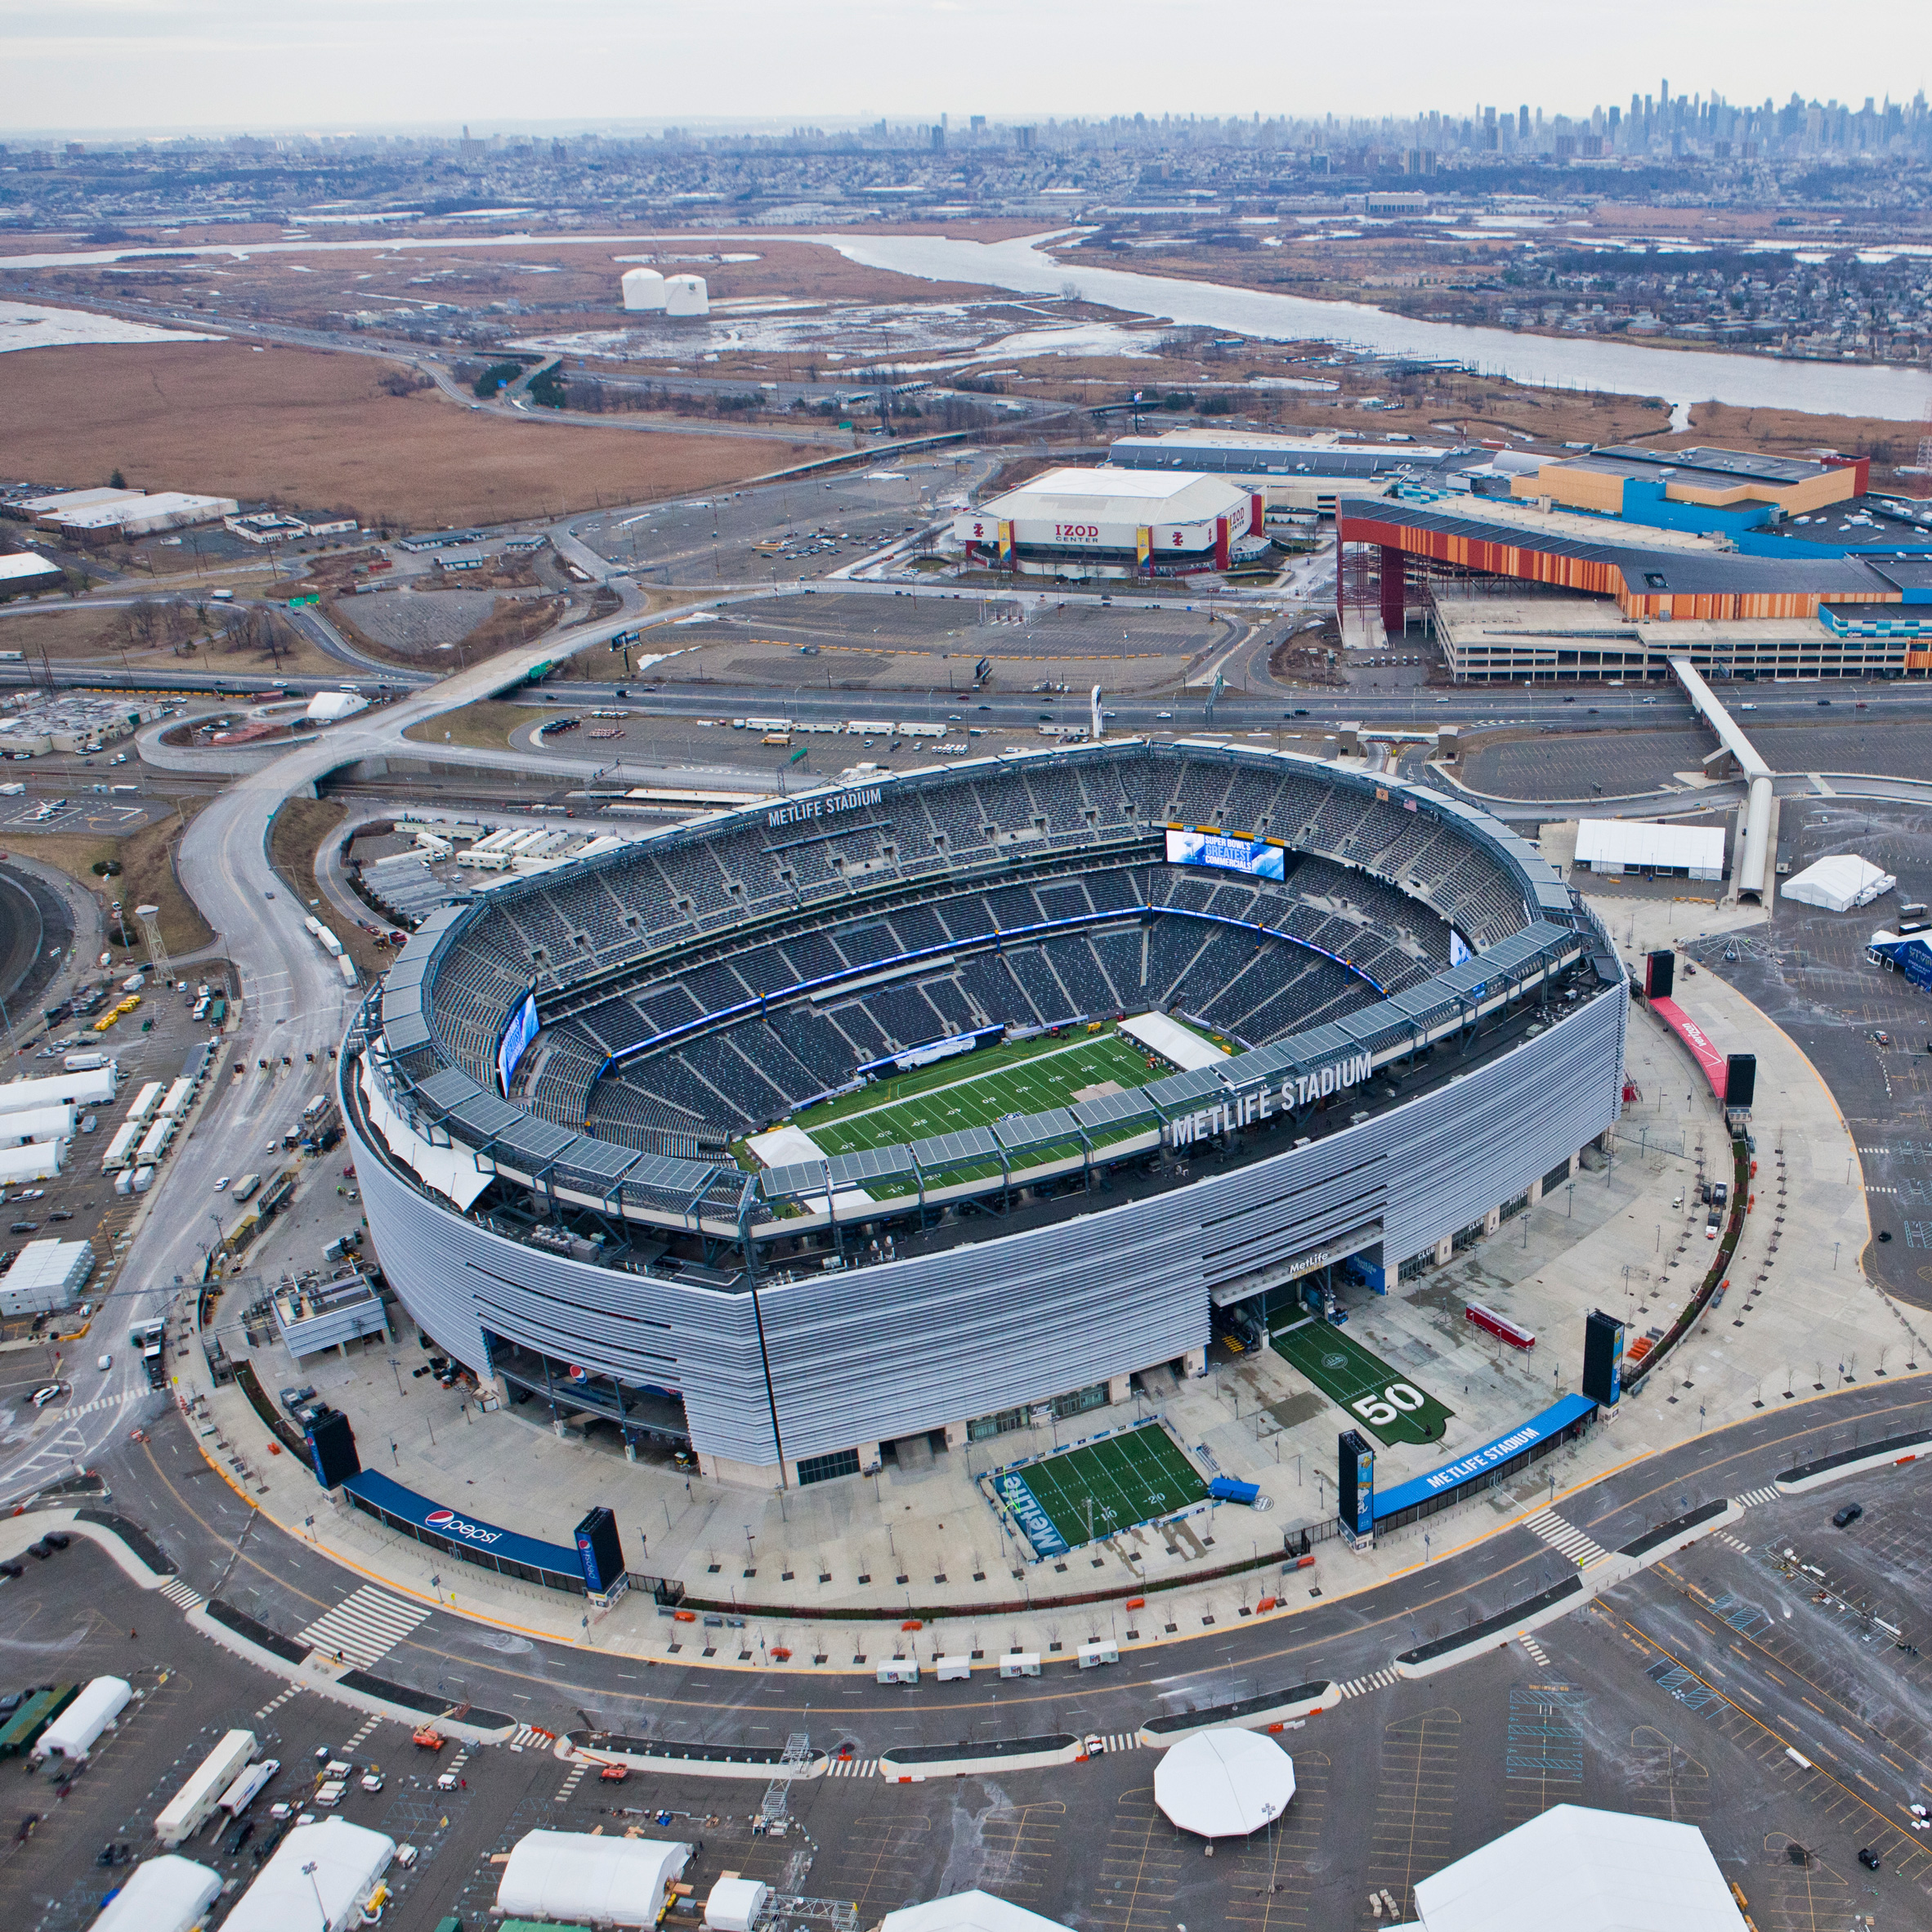 MetLife Stadium by HOK, Bruce Mau and Rockwell Group, East Rutherford, New Jersey